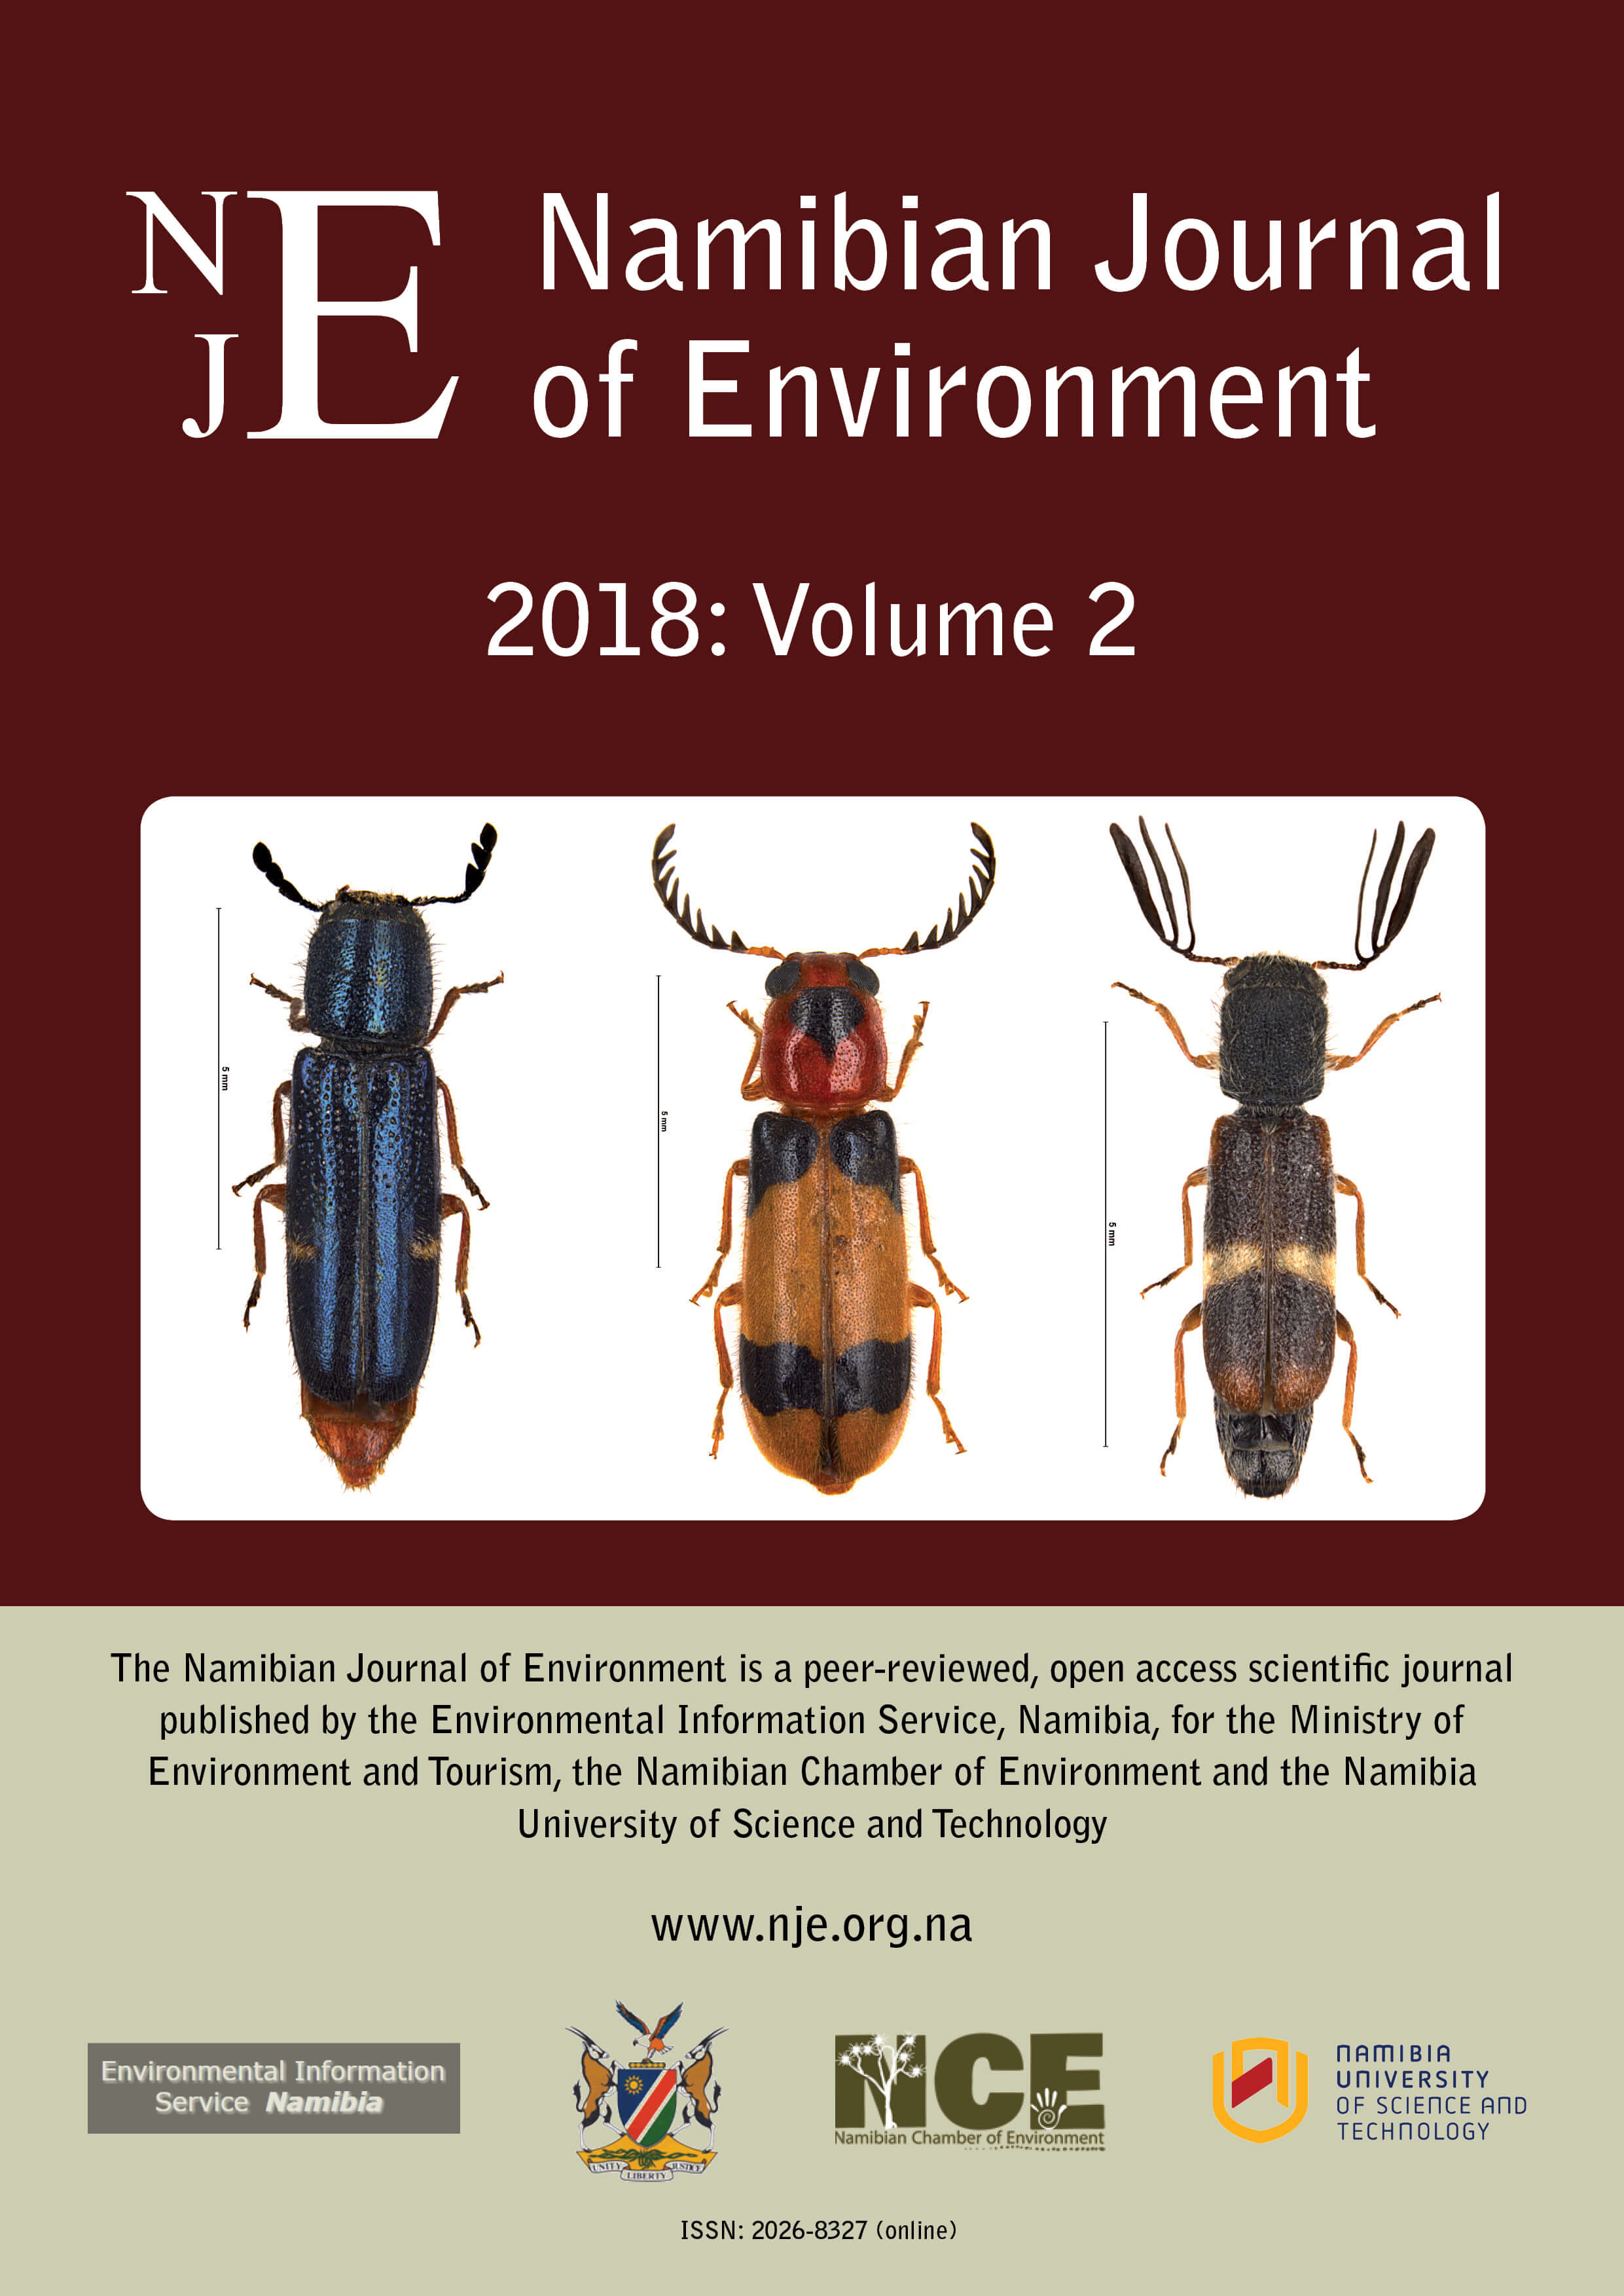 Cover of Namibian Journal of Environment 2018 Volume 2